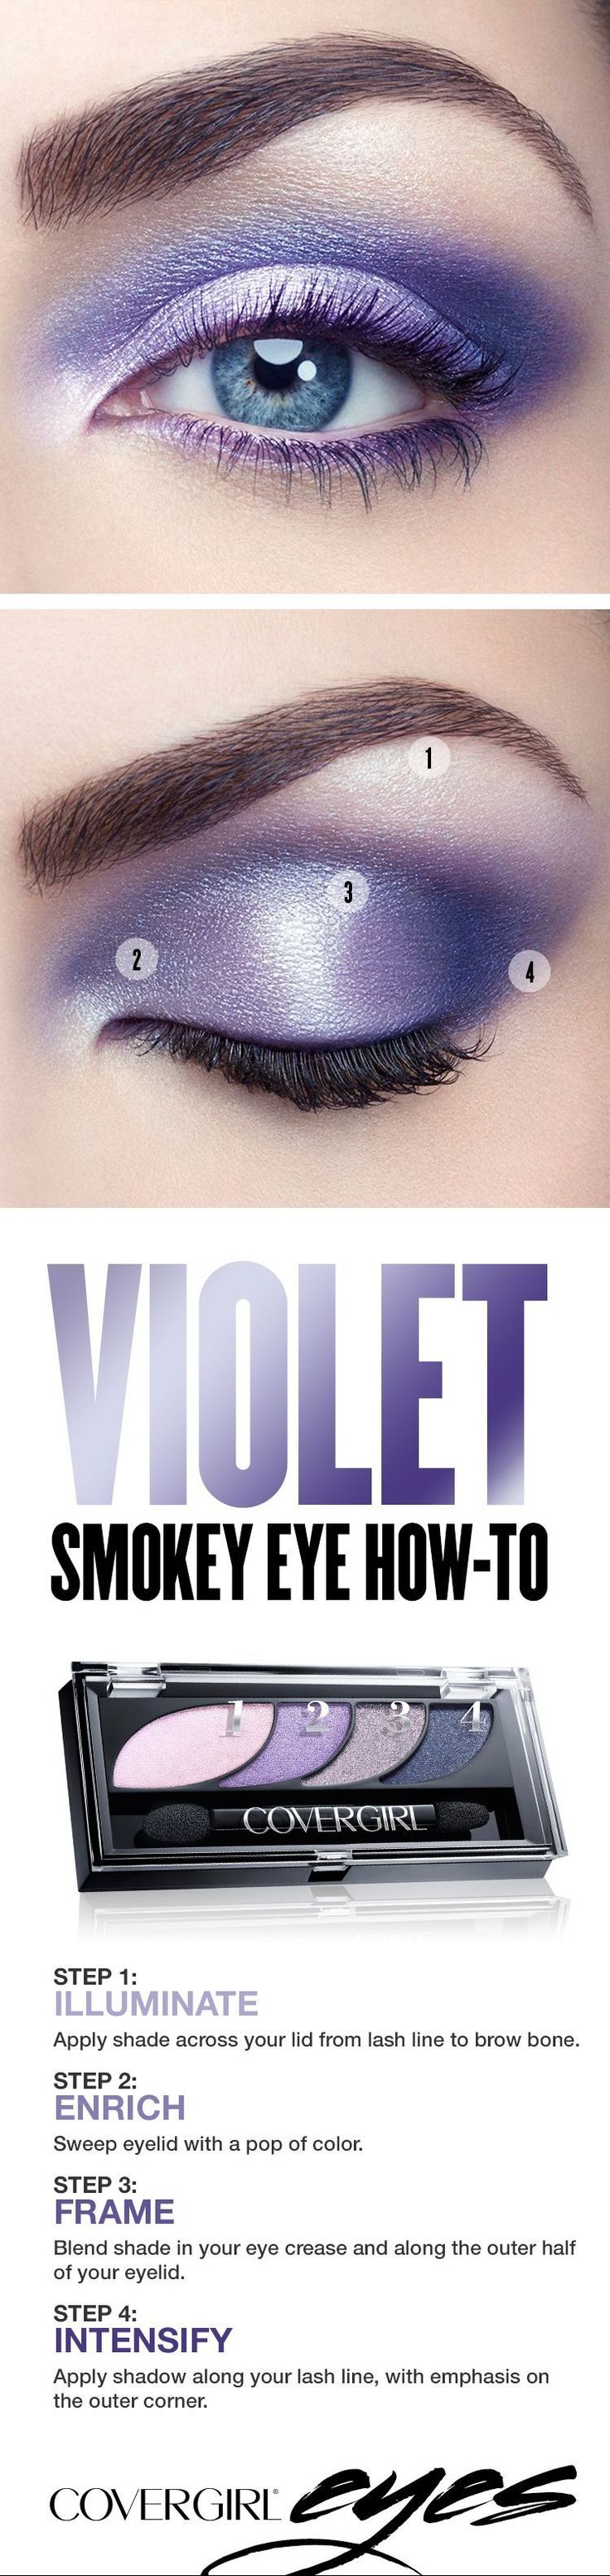 Try our simple step-by-step tutorial this holiday season for a dramatic violet smokey eye, featuring COVERGIRL Eyeshadow Quads in Va Va Violets. This makeup palette makes it easy to add shimmery color to your holiday look. Perfect for Christmas or New Year's Eve parties when you'd like to try something other than a standard black smokey eye. #eyeshadowsstepbystep